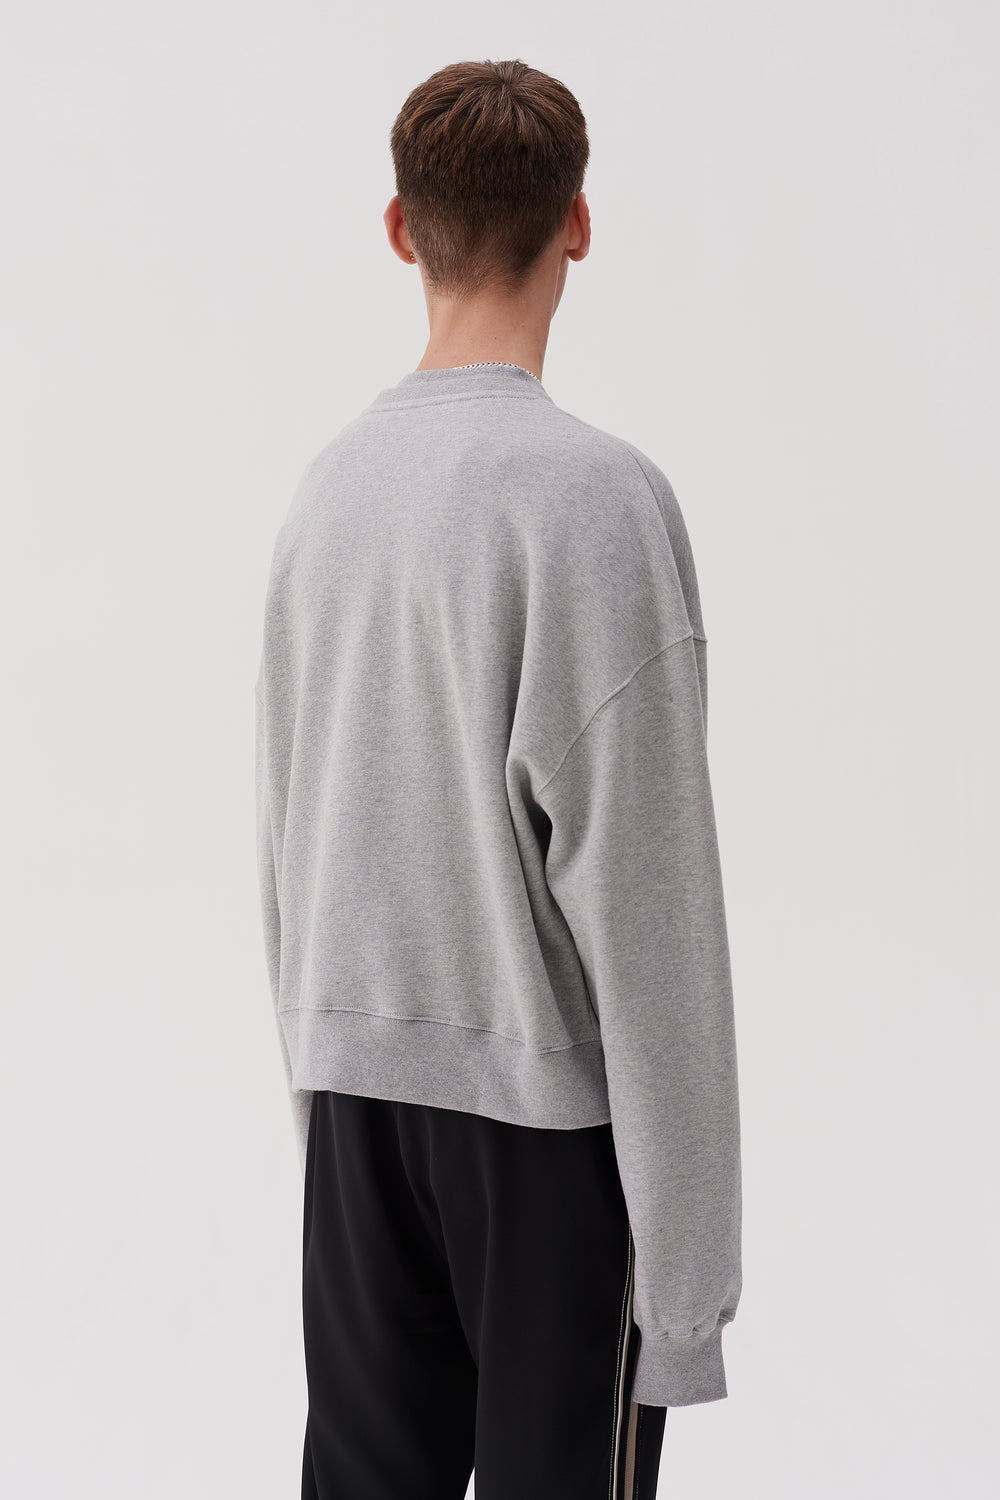 Tron Sweatshirt Heather Grey